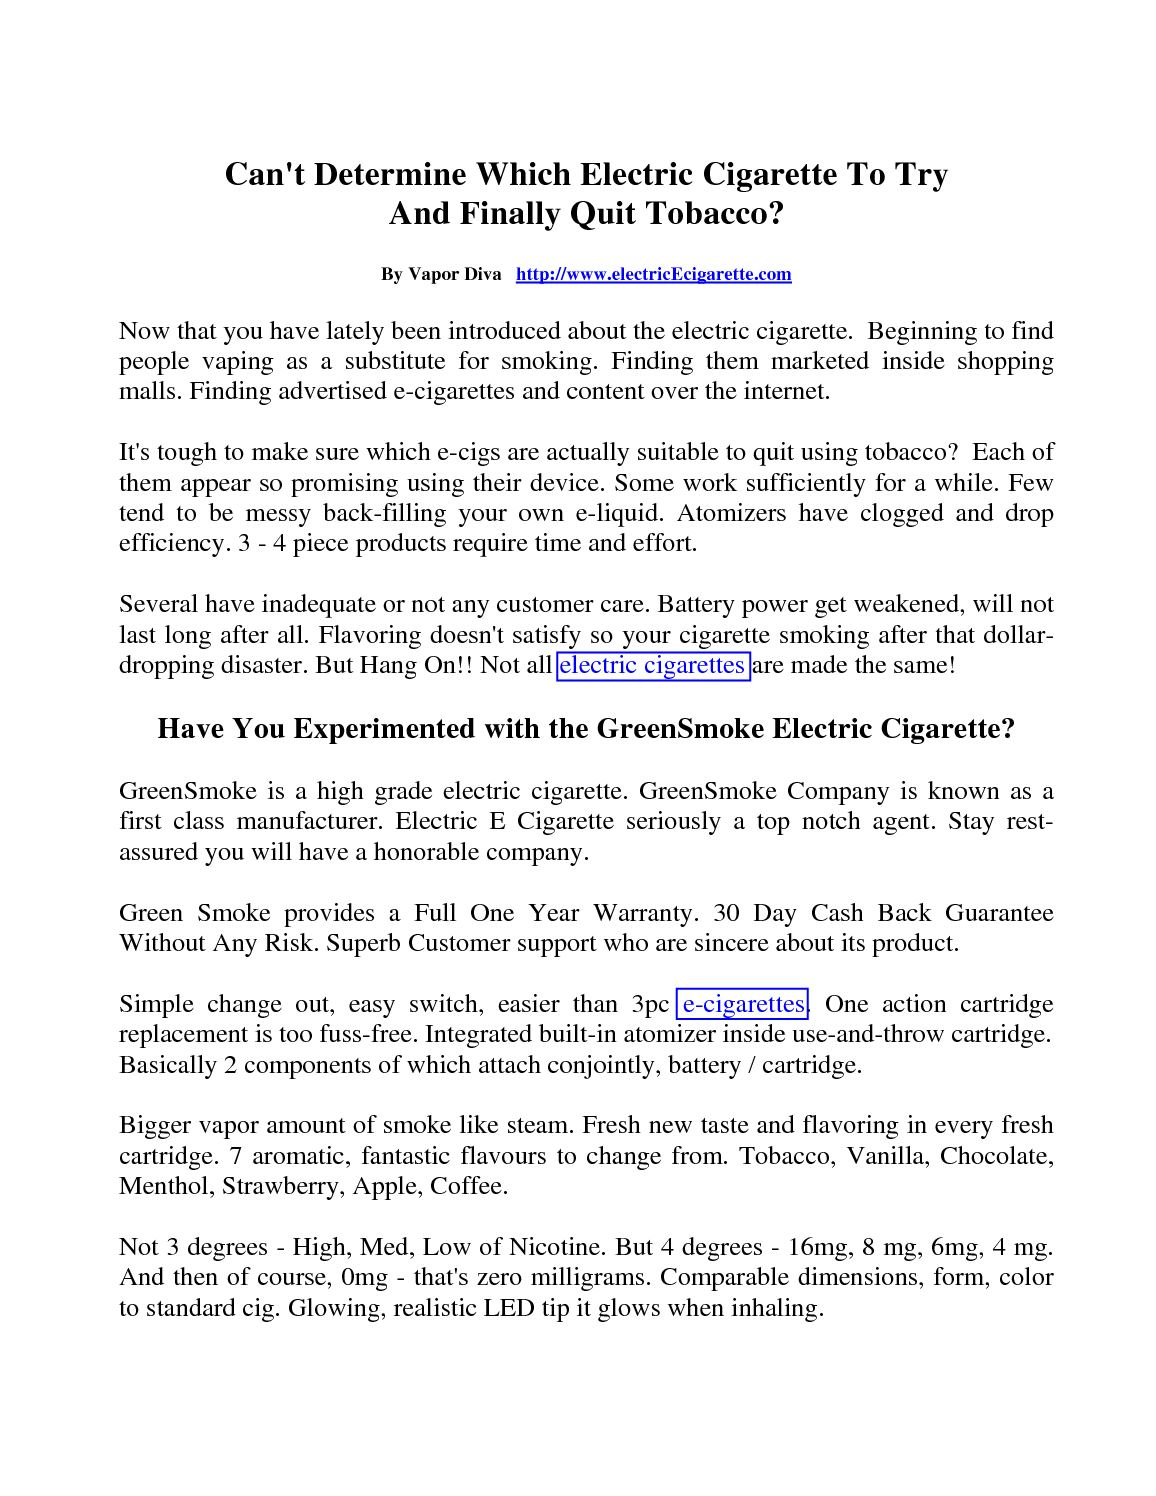 Calaméo - Can't Determine Which Electric Cigarette To Use